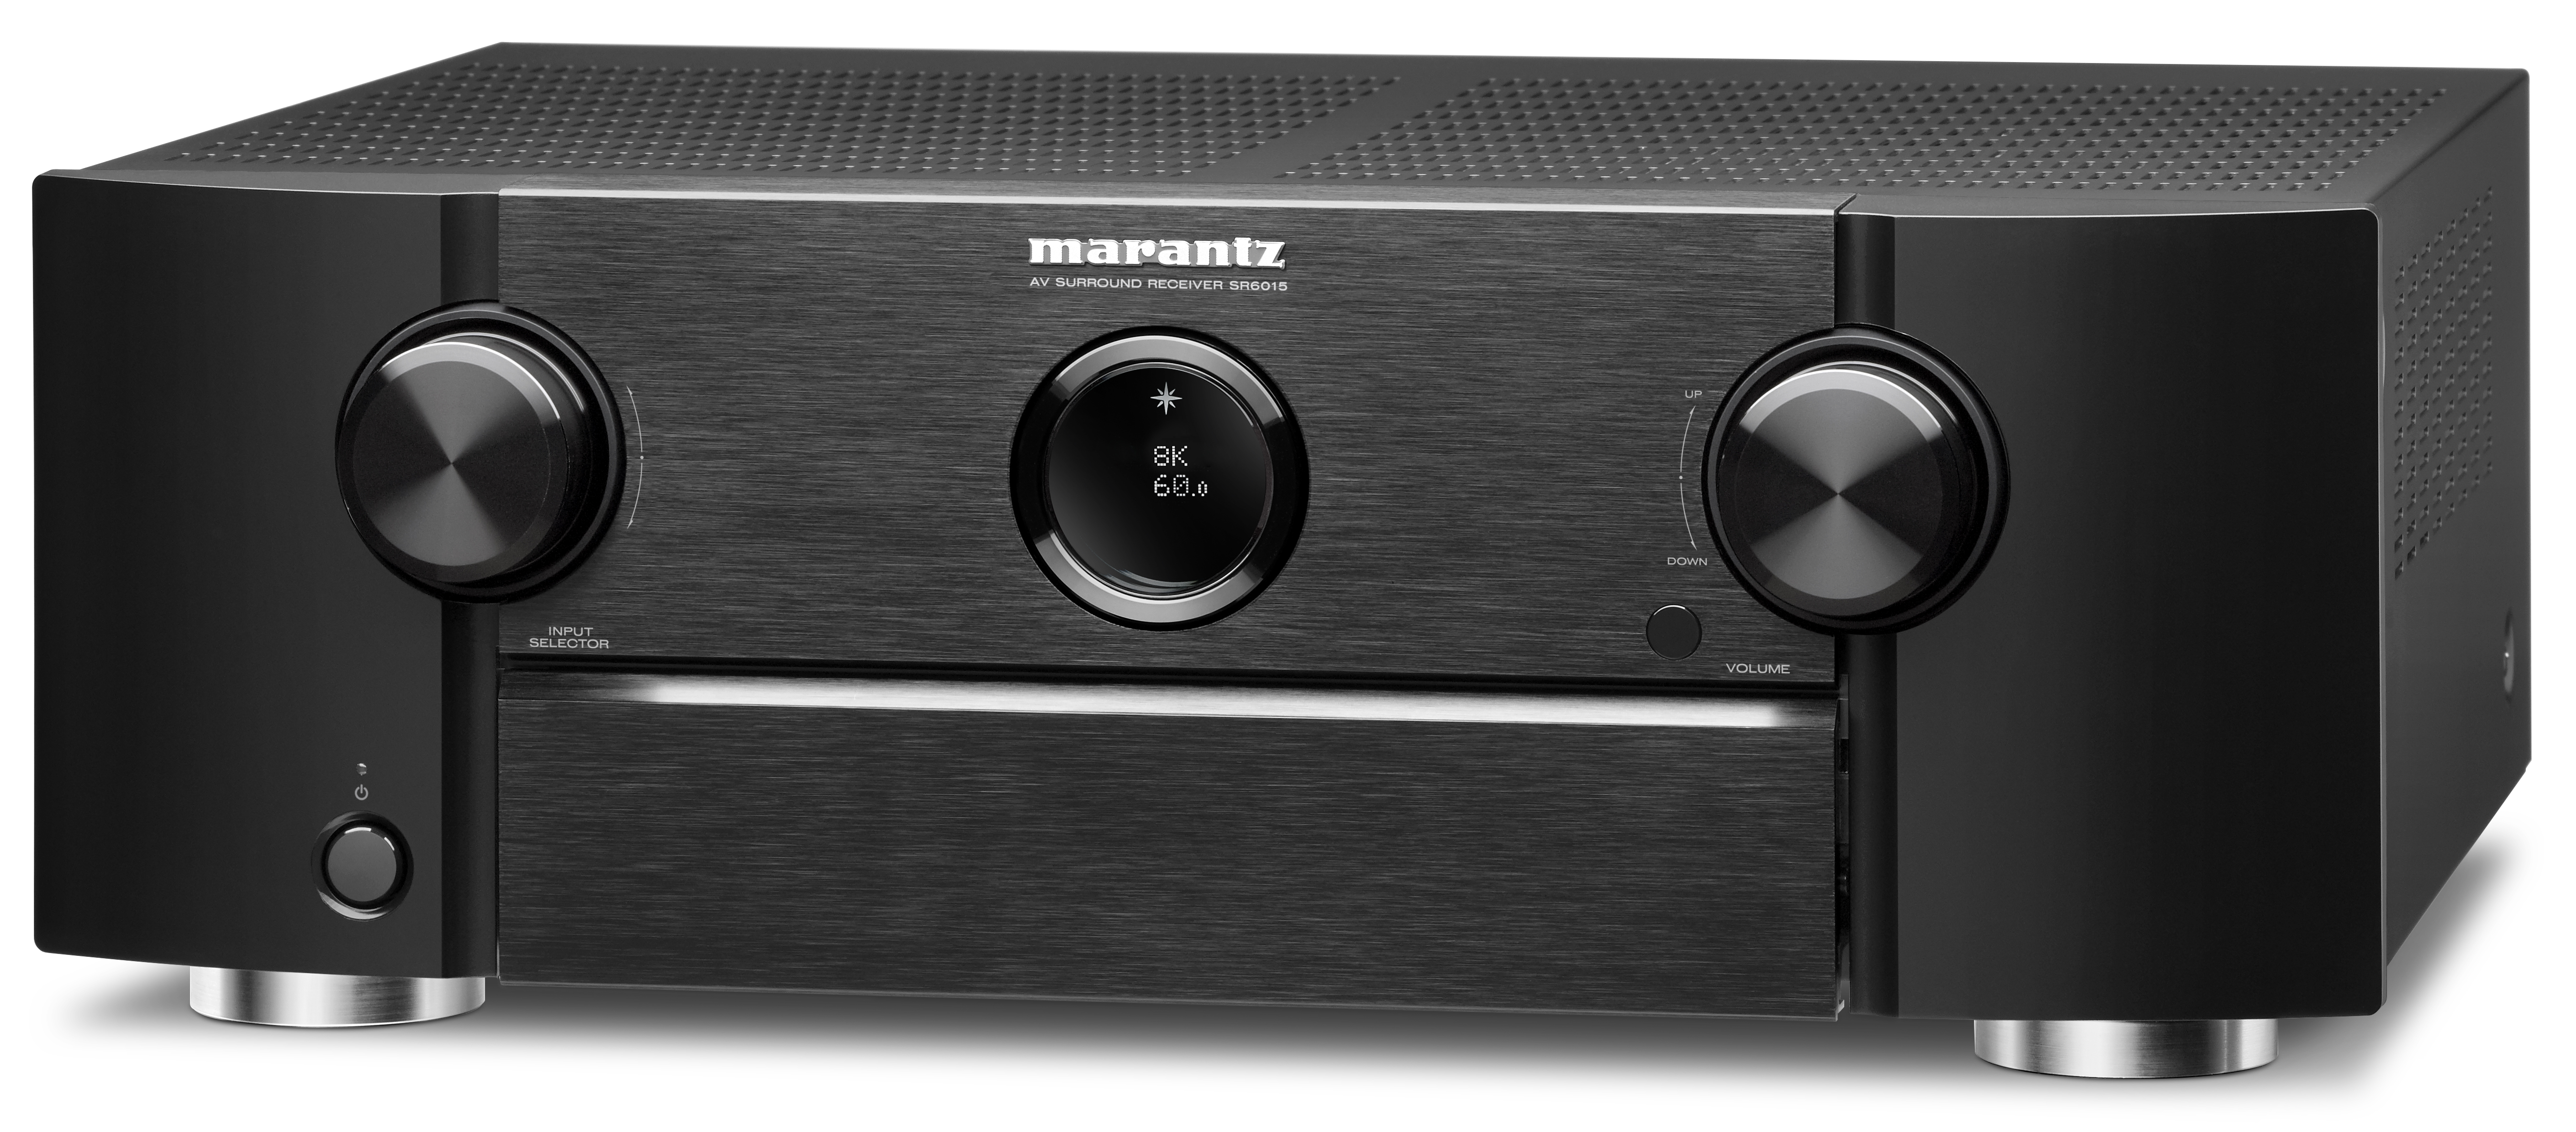 Marantz SR6015 AVR home theater reciever